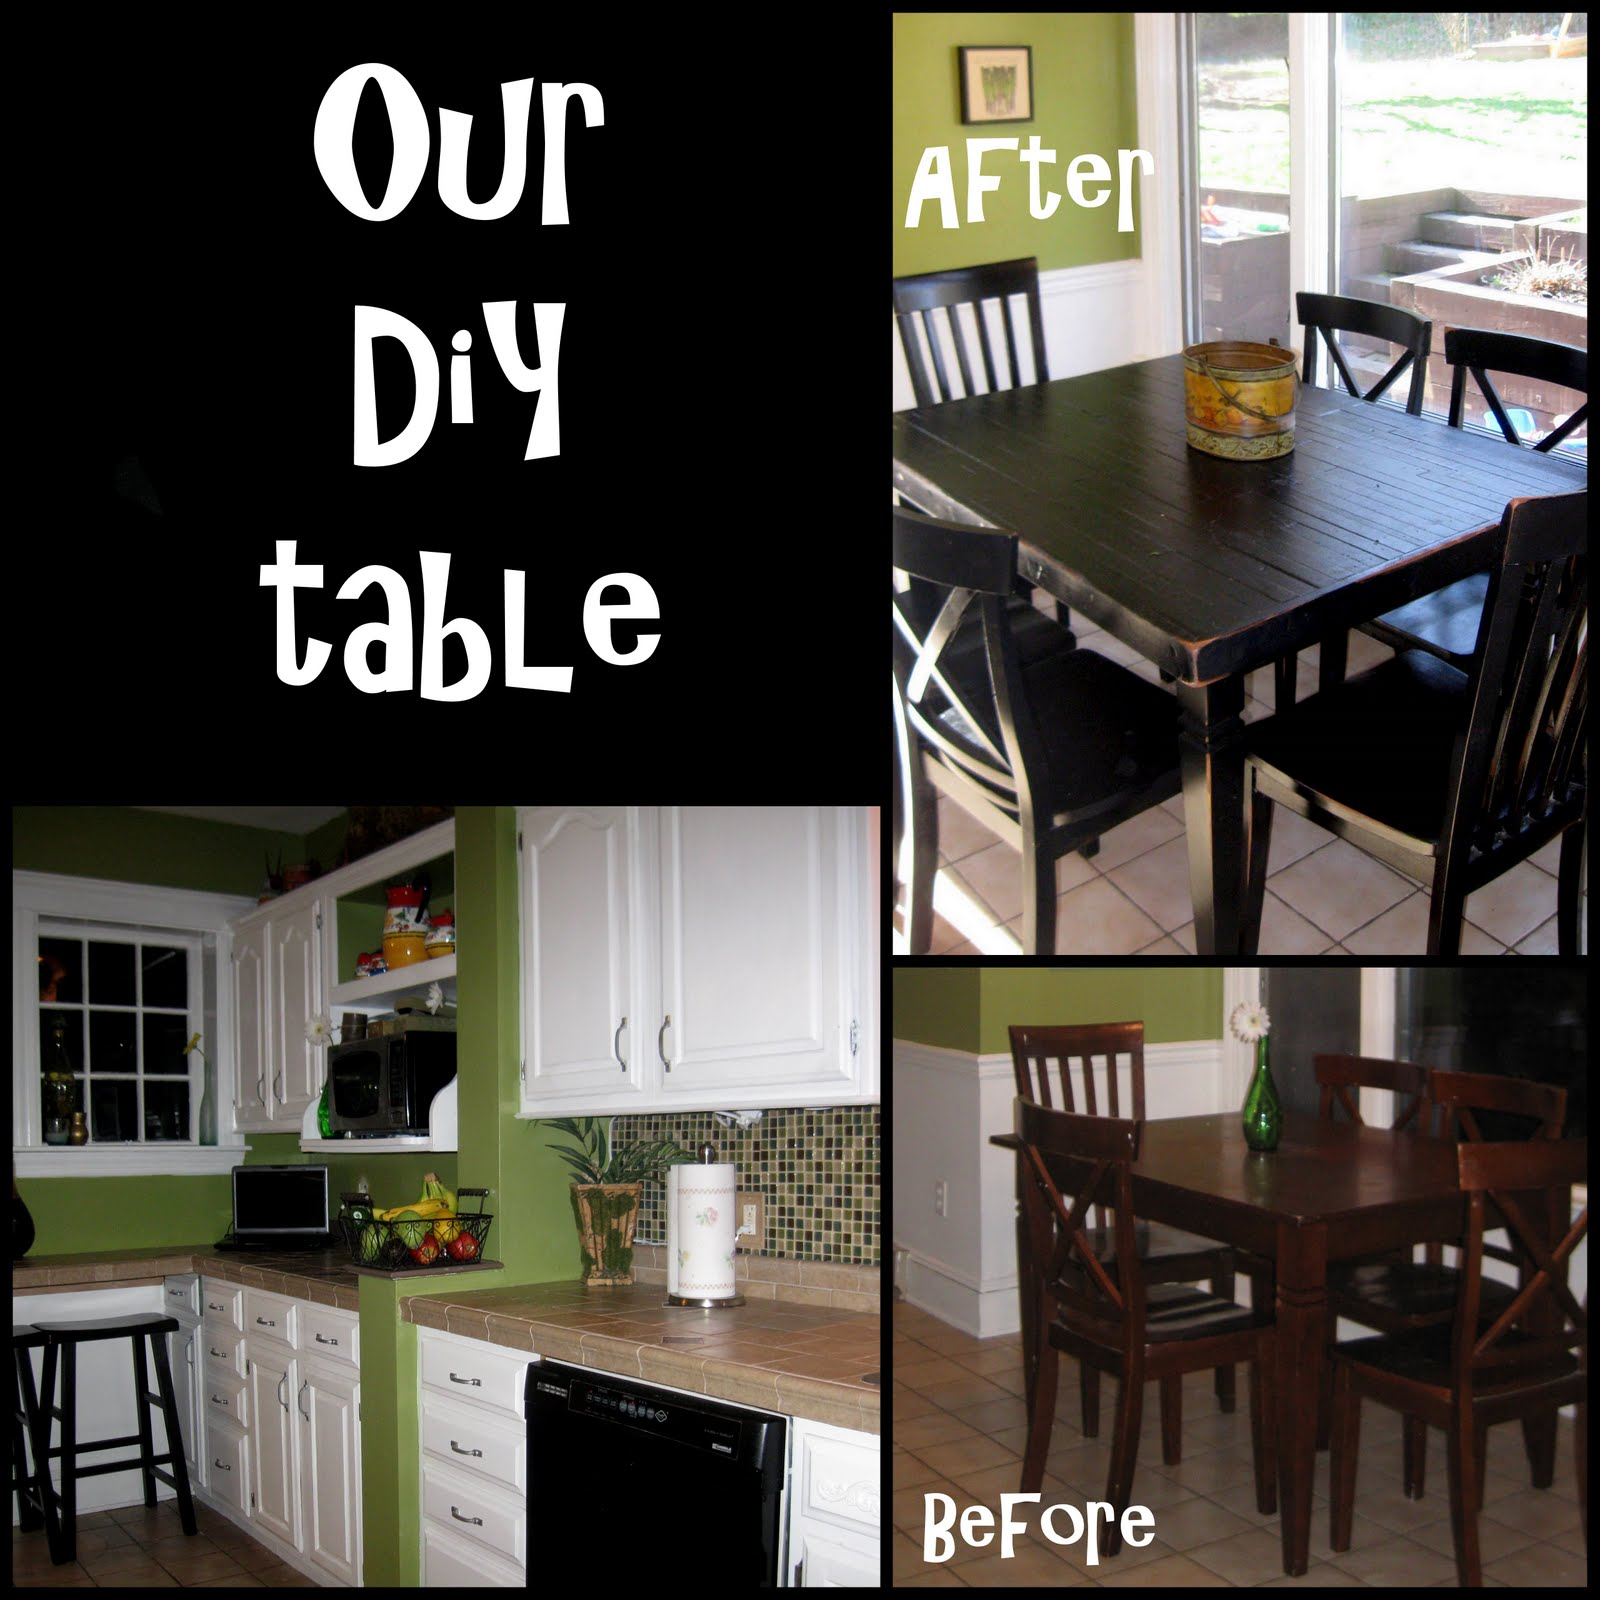 geezeescanvas refinish kitchen table DIY kitchen table with our recycled wood